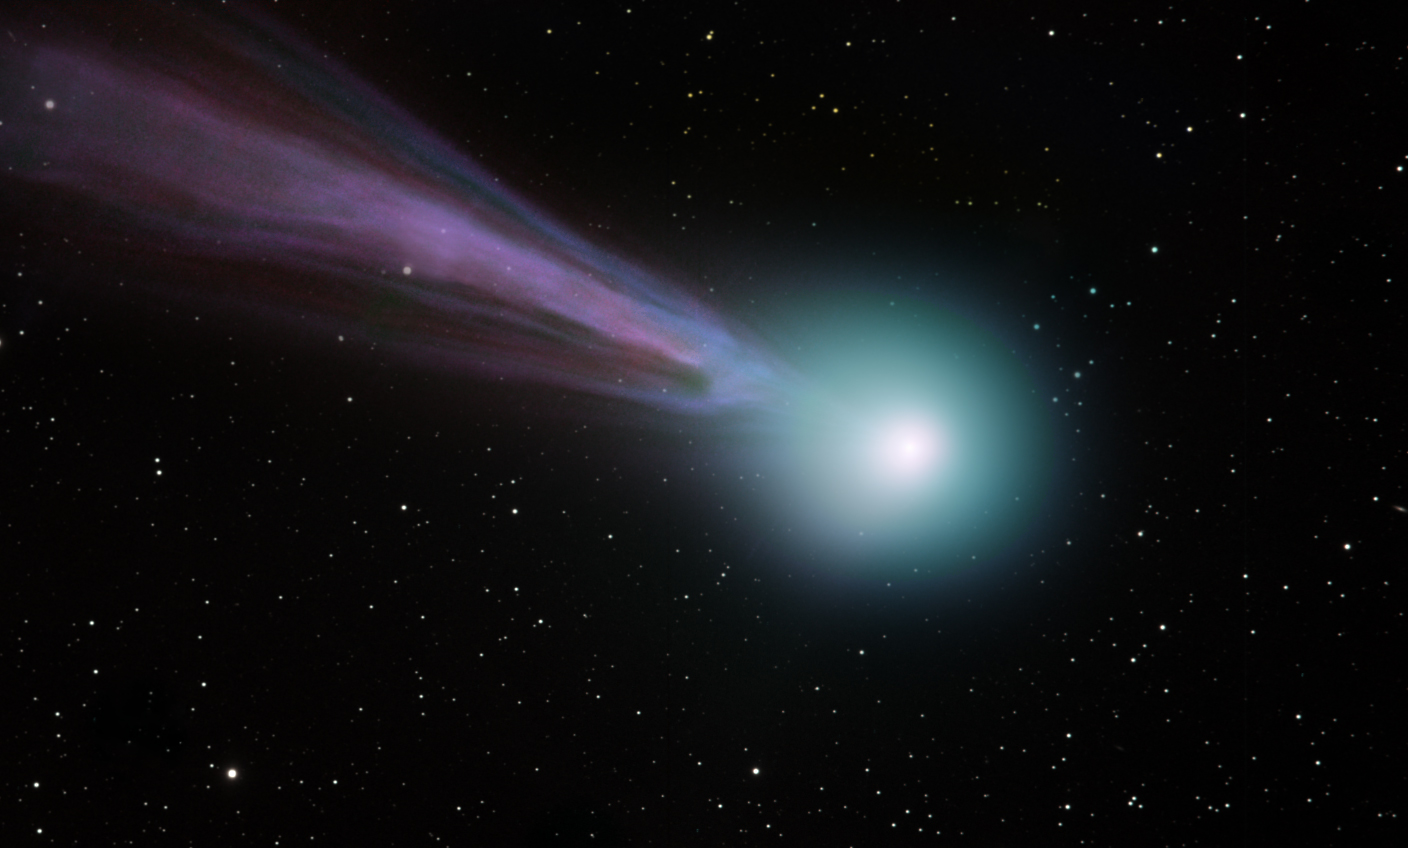 Comet Lovejoy Photograph by Howes